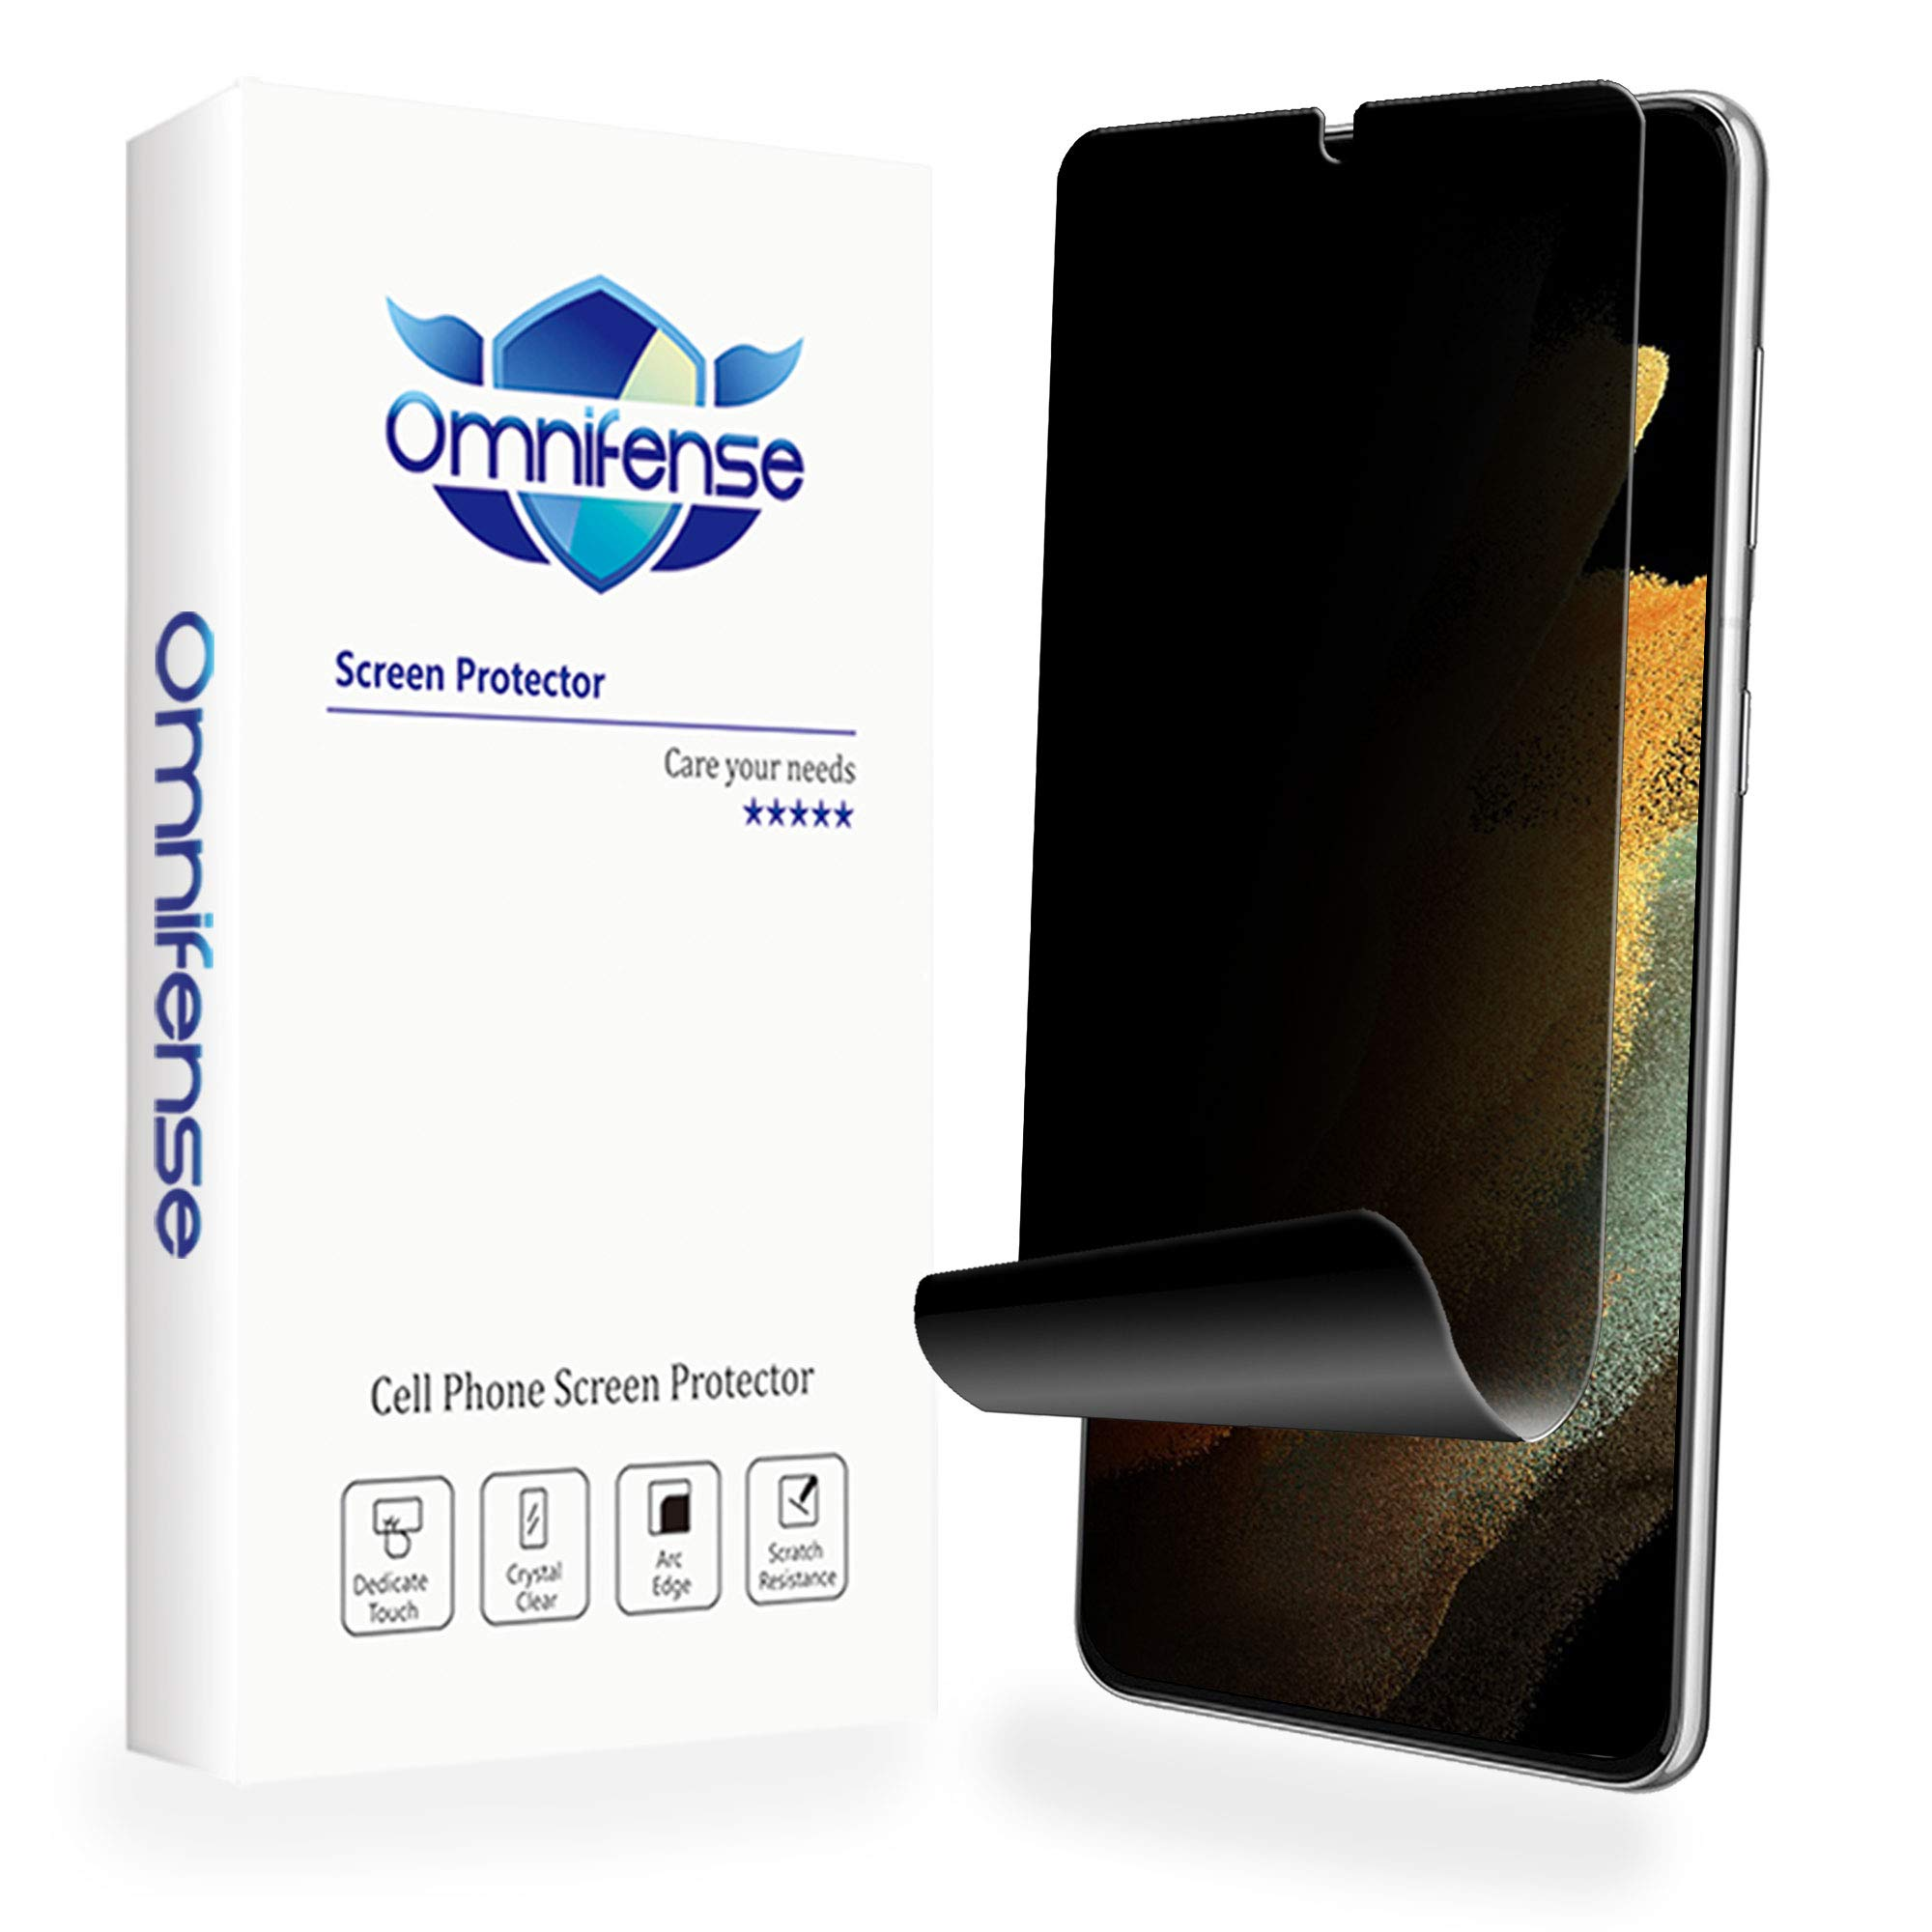 Omnifense Galaxy S21 Ultra 5G Privacy Screen Protector Full Adhesive Soft Film (NOT Tempered Glass)[2 Pack], Case Friendly Support In-Screen Unlock, Glossy Finish 2 Way Anti Spy Privacy Protection for Samsung Galaxy S21 Ultra